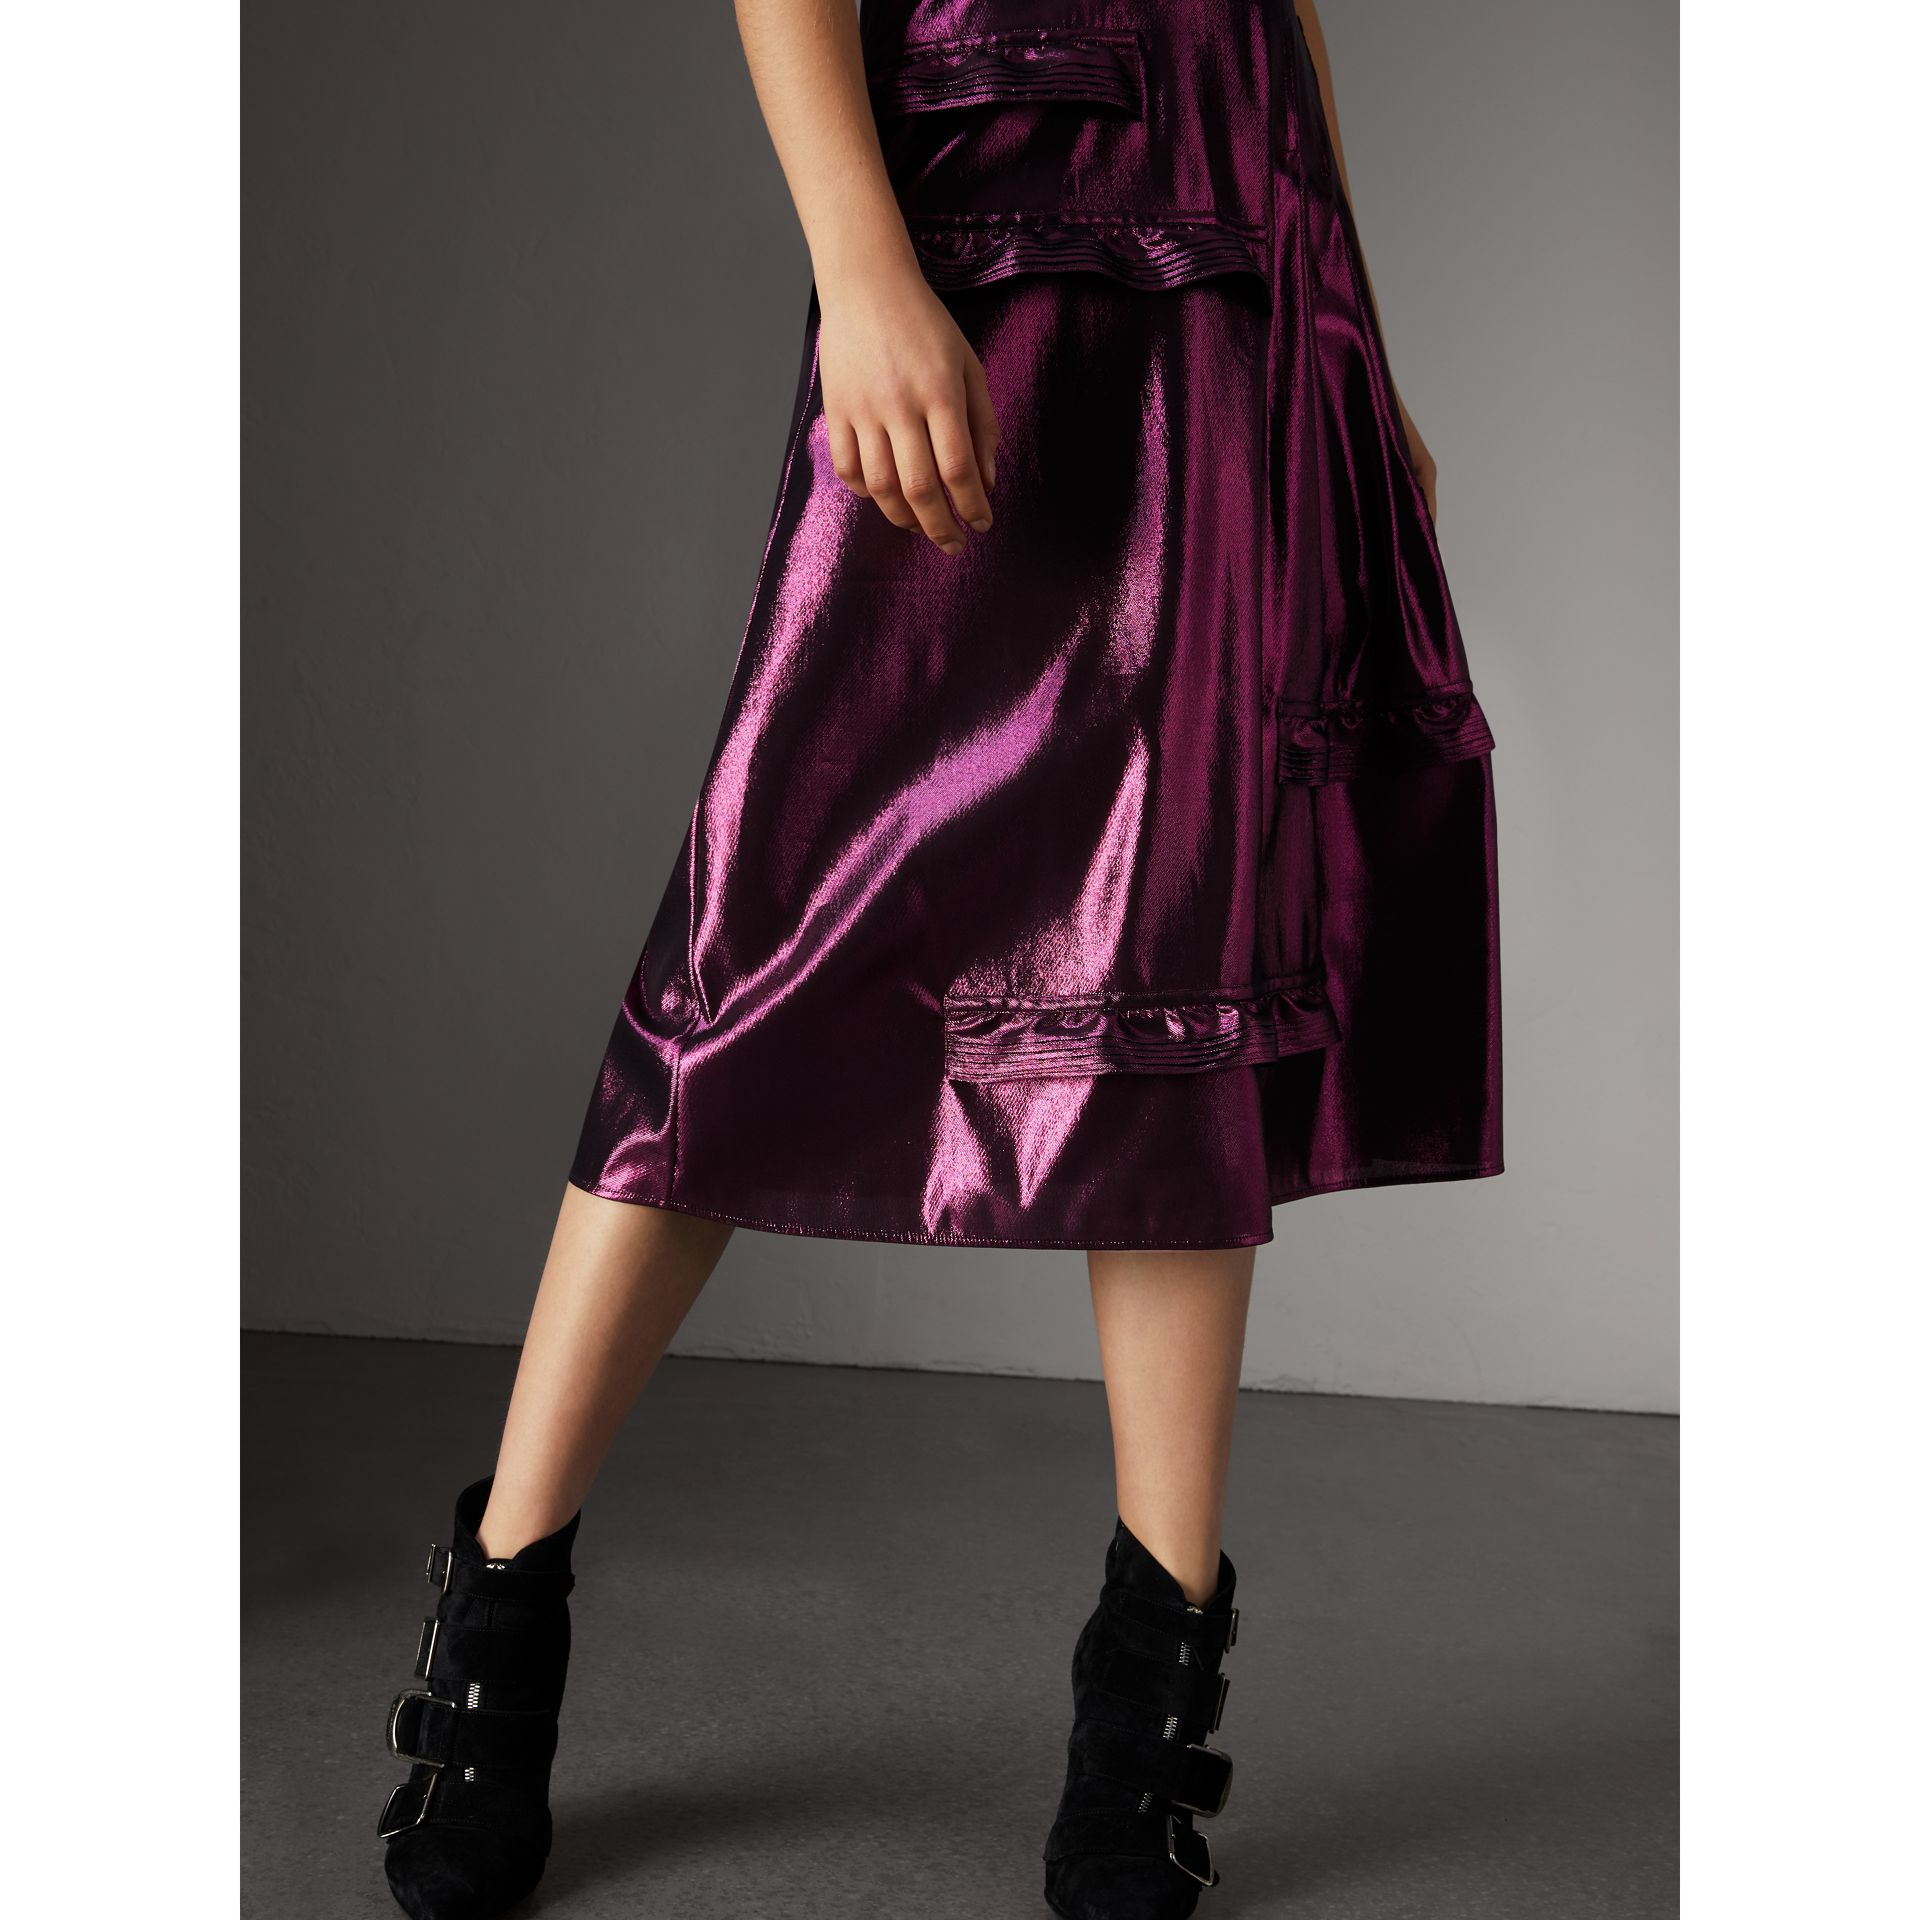 Short-sleeve Ruffle Detail Lamé Dress – Online Exclusive in Bright Fuchsia - Women | Burberry - gallery image 2